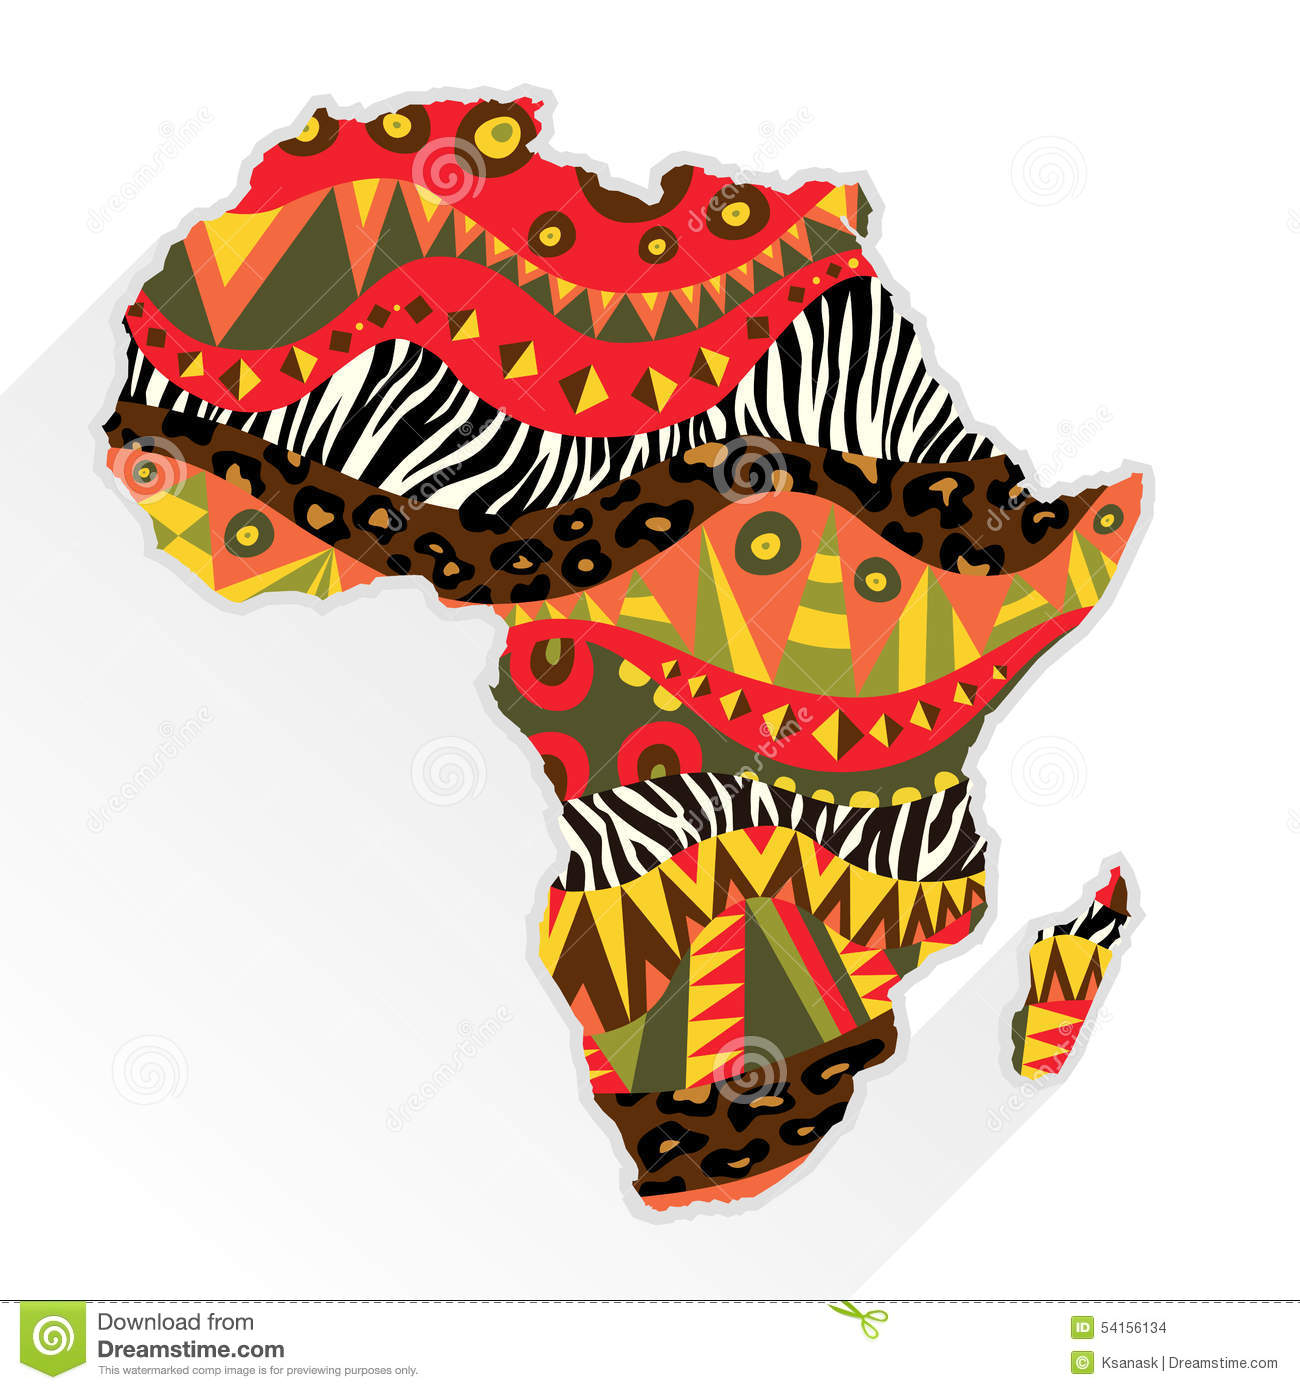 africa continent ornate with ethnic pattern stock vector Monkey Clip Art Tiger Clip Art